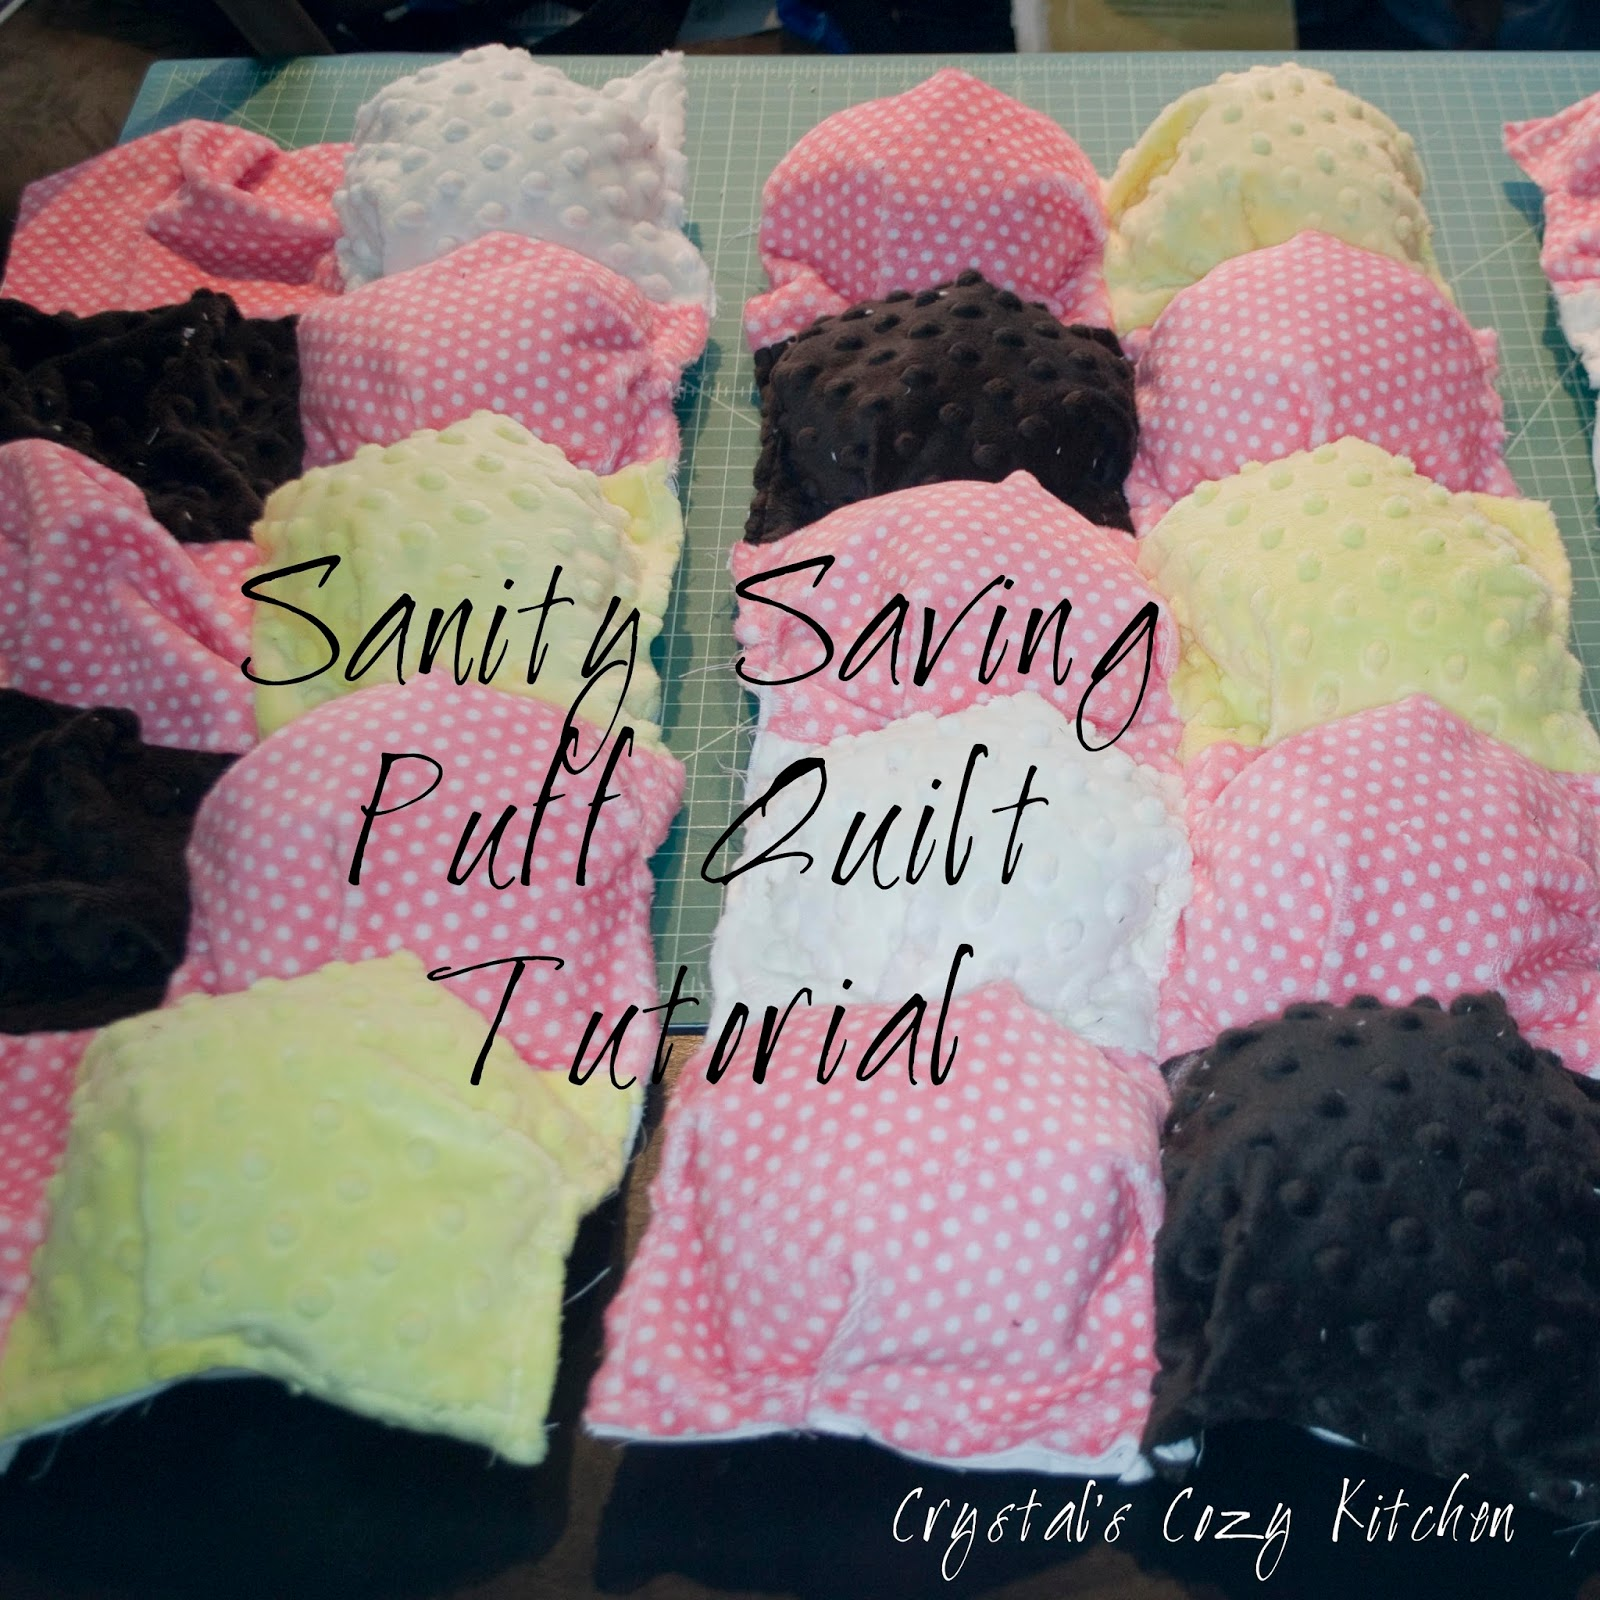 Crystals Cozy Kitchen Sanity Saving Puff Quilt Tutorial No Sewing